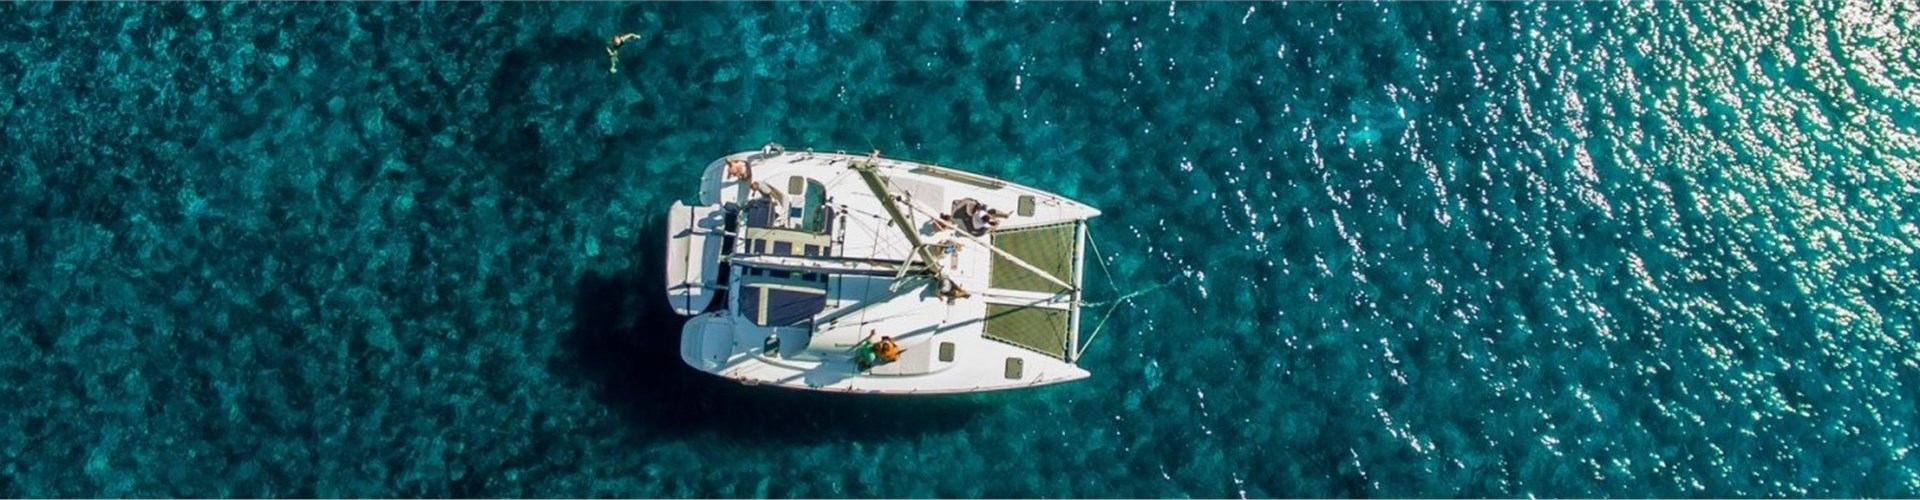 Photo of Catamaran Private Cruise Tour with meal and drinks